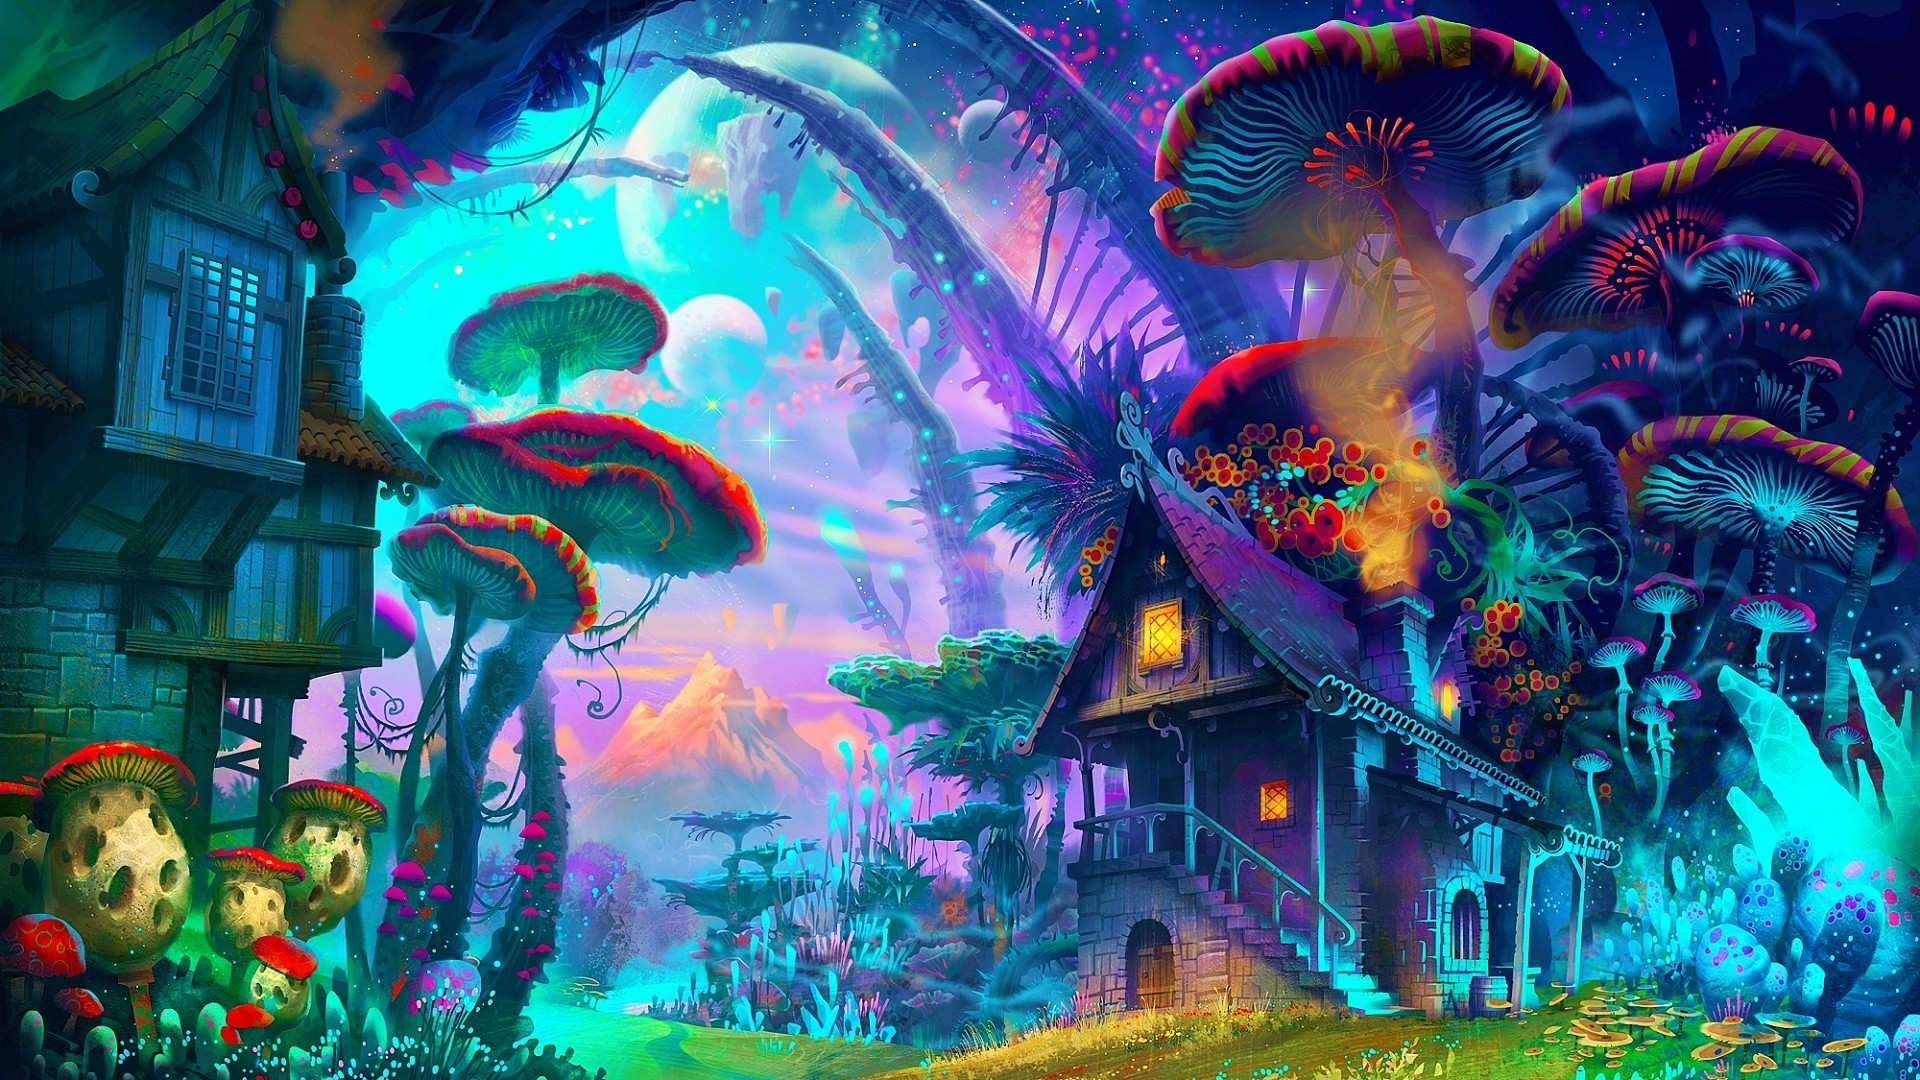 Psychedelic hd wallpaper widescreen 1920x1080 68 images - Trippy nature wallpaper ...